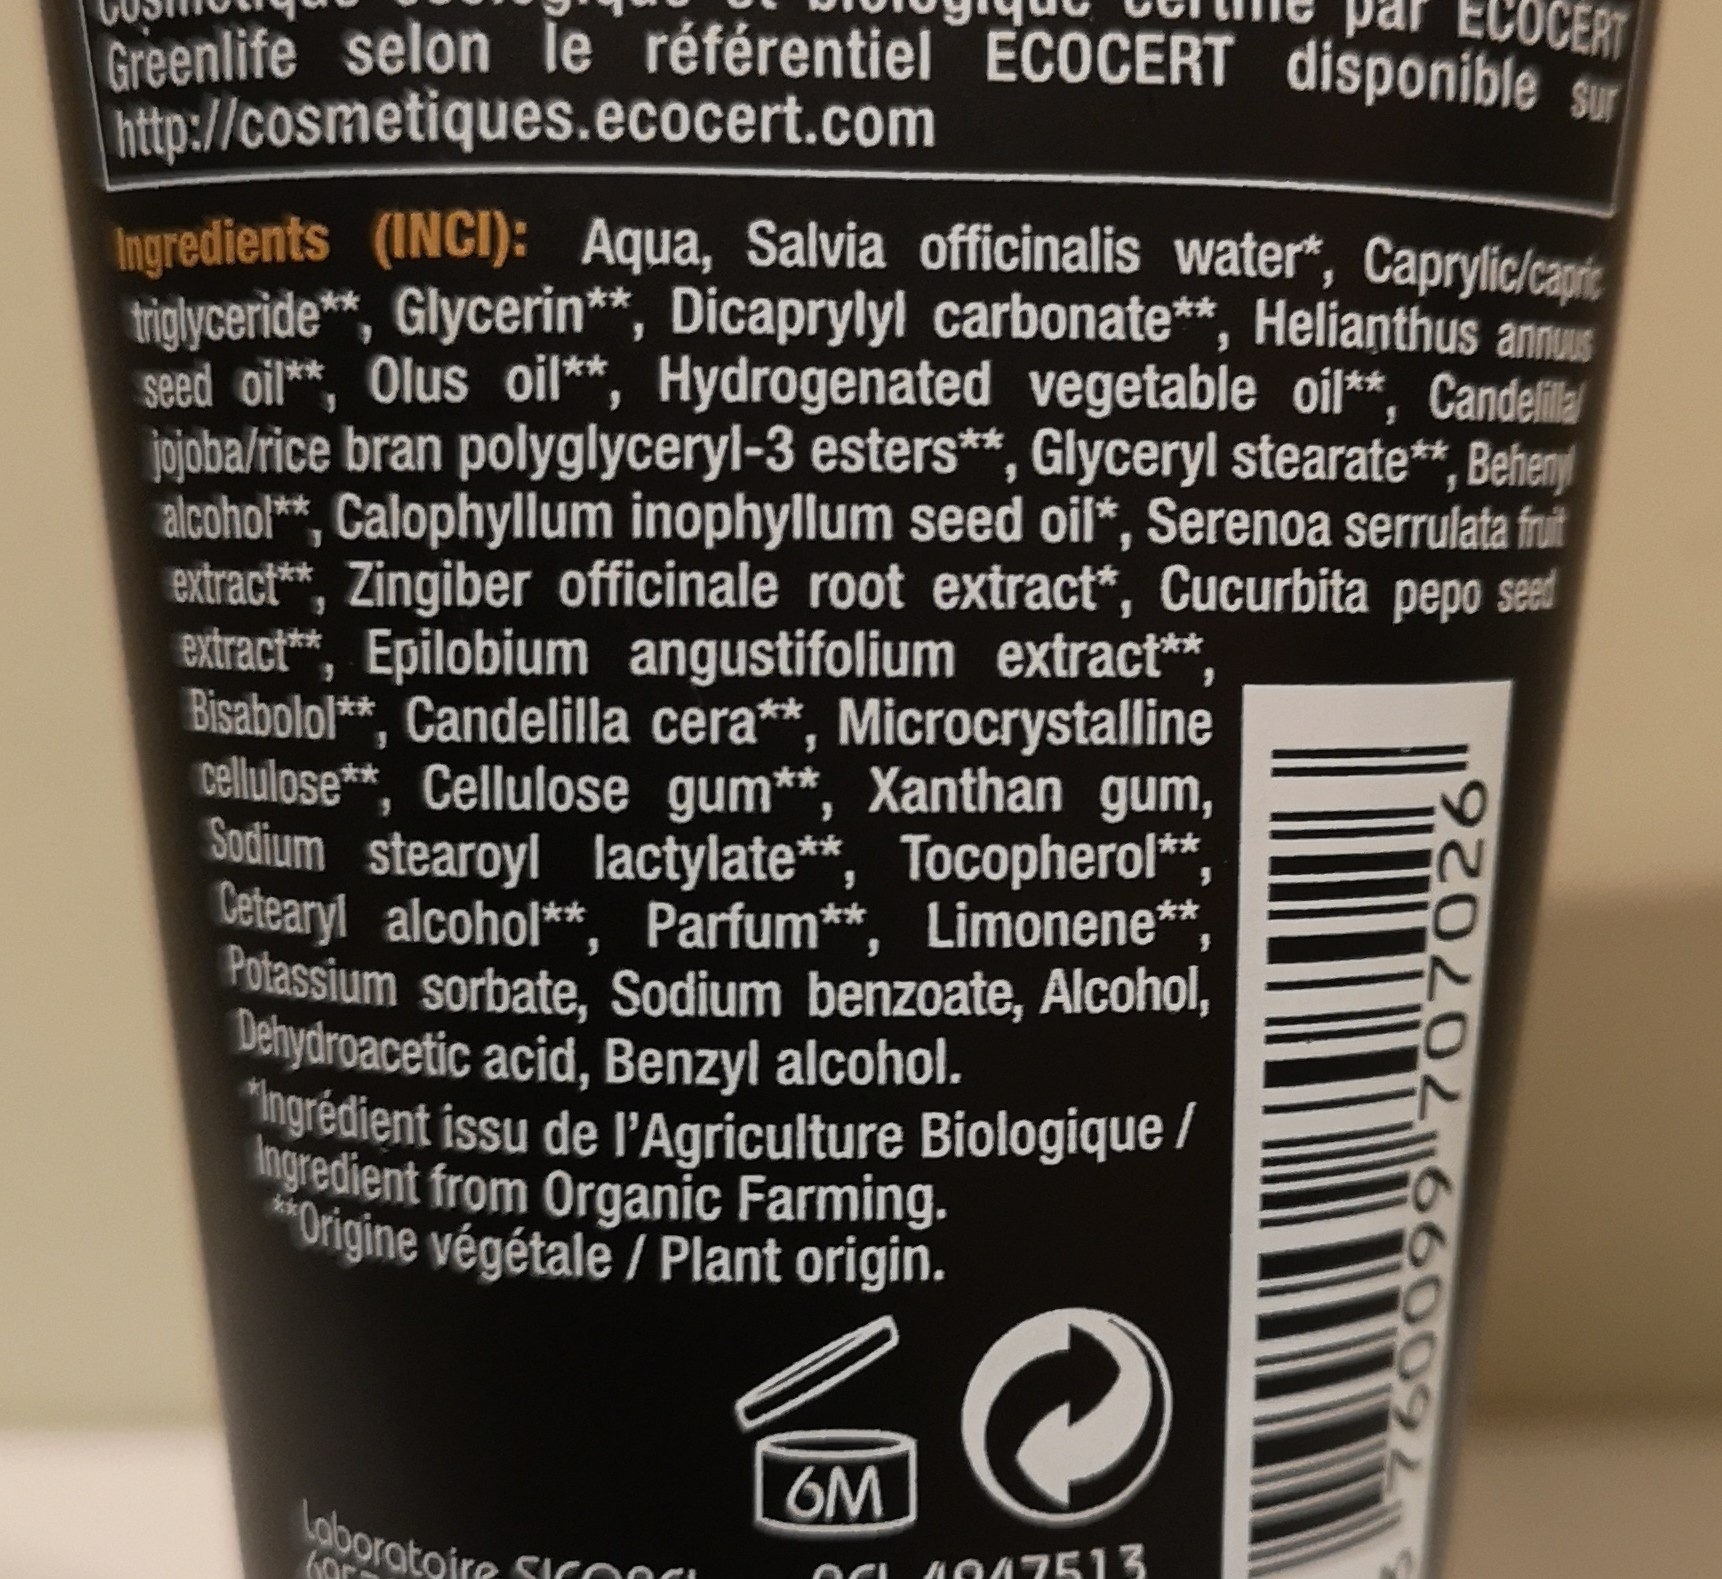 apaisant gingembre bio tamanol bio - Ingredients